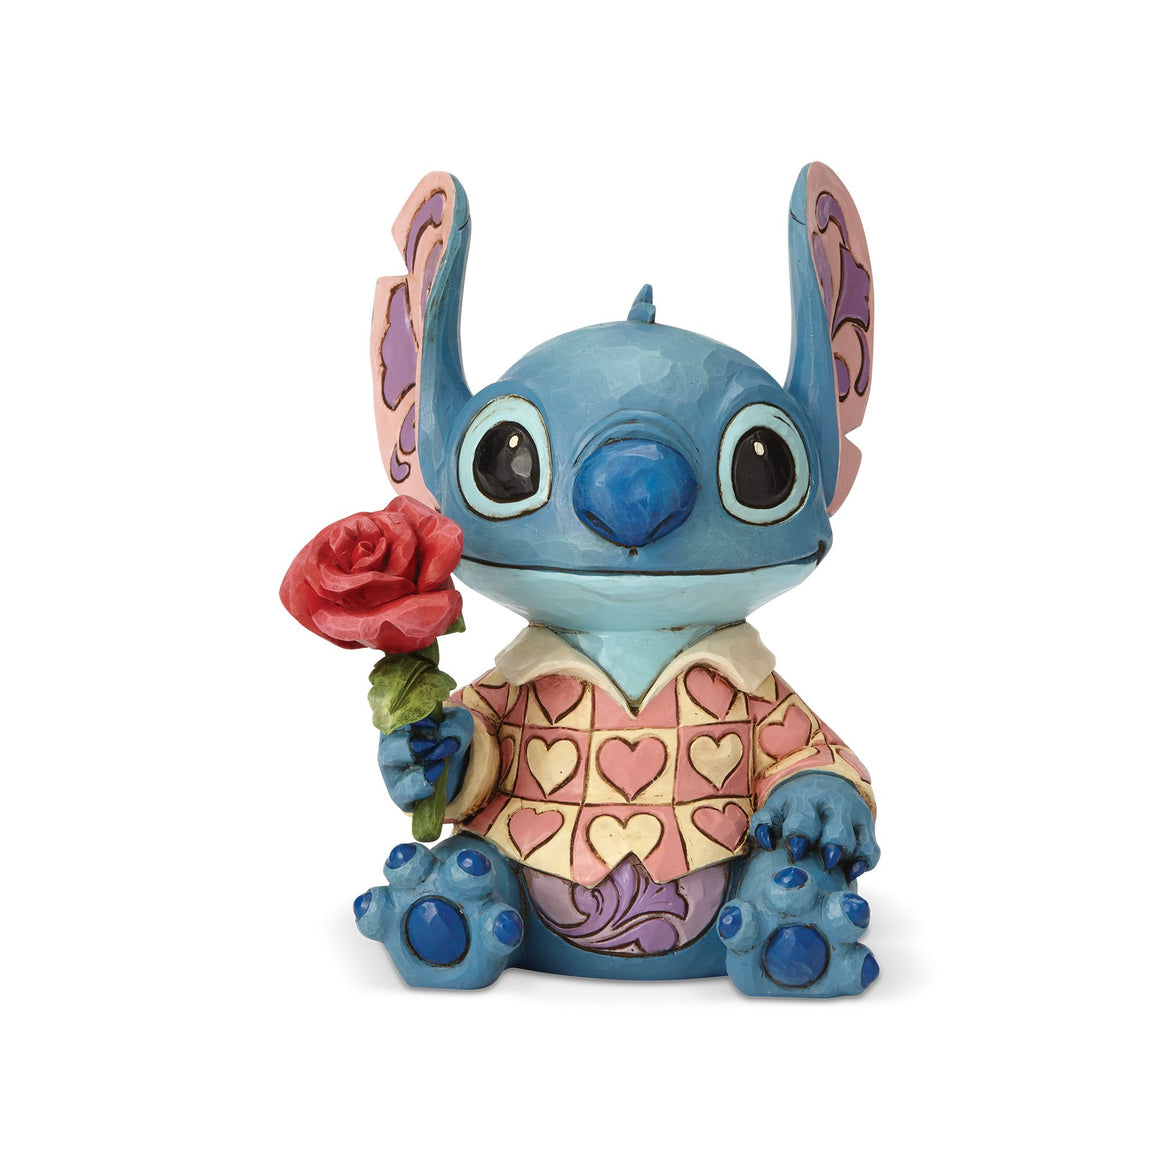 Disney Traditions by Jim Shore Clueless Casanova - Stitch Figurine